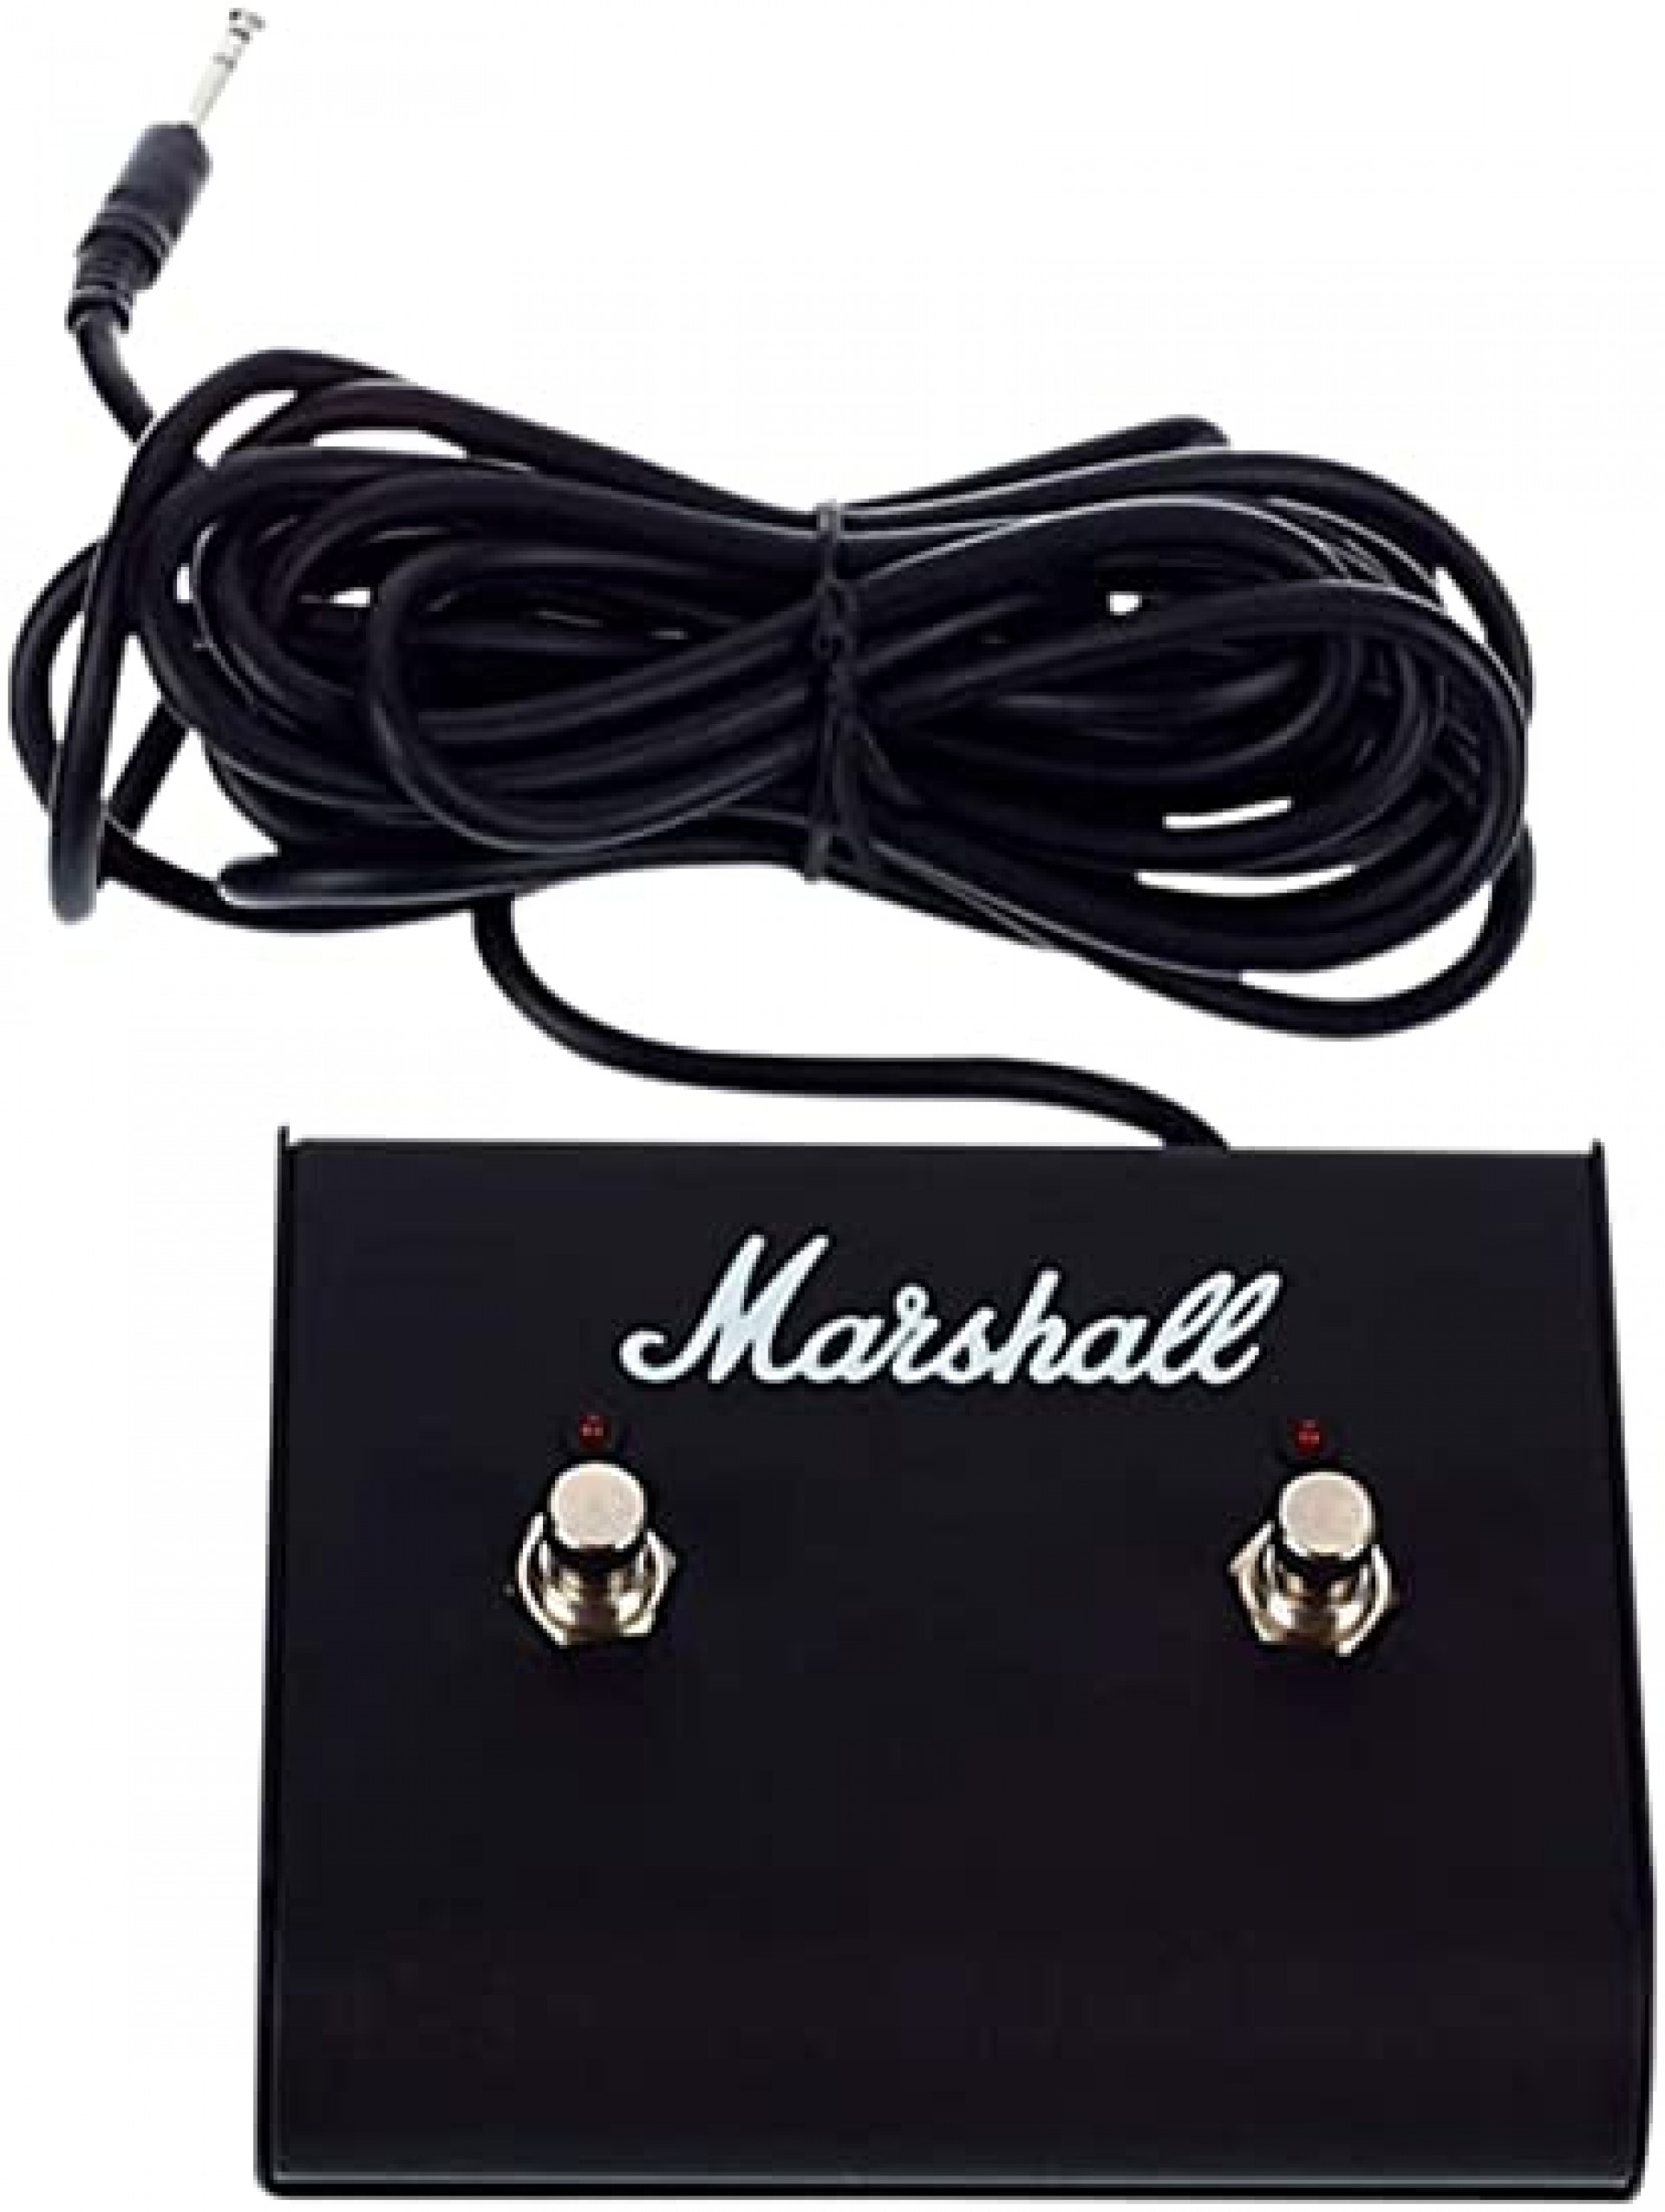 Marshall PEDL-91003 SWITCH